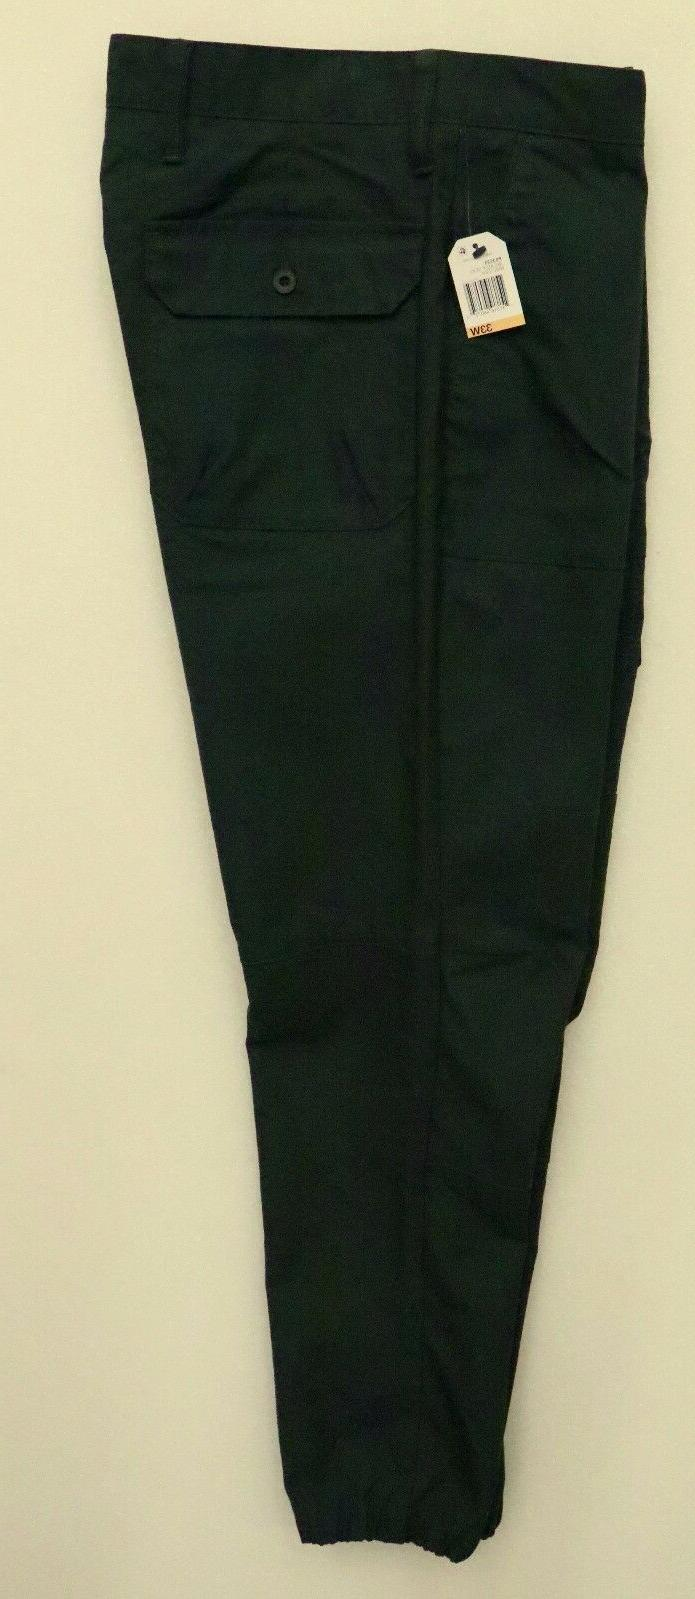 NAUTICA MENS CASUAL GREEN TECH PANTS CARGO ELASTIC LEG OPENI